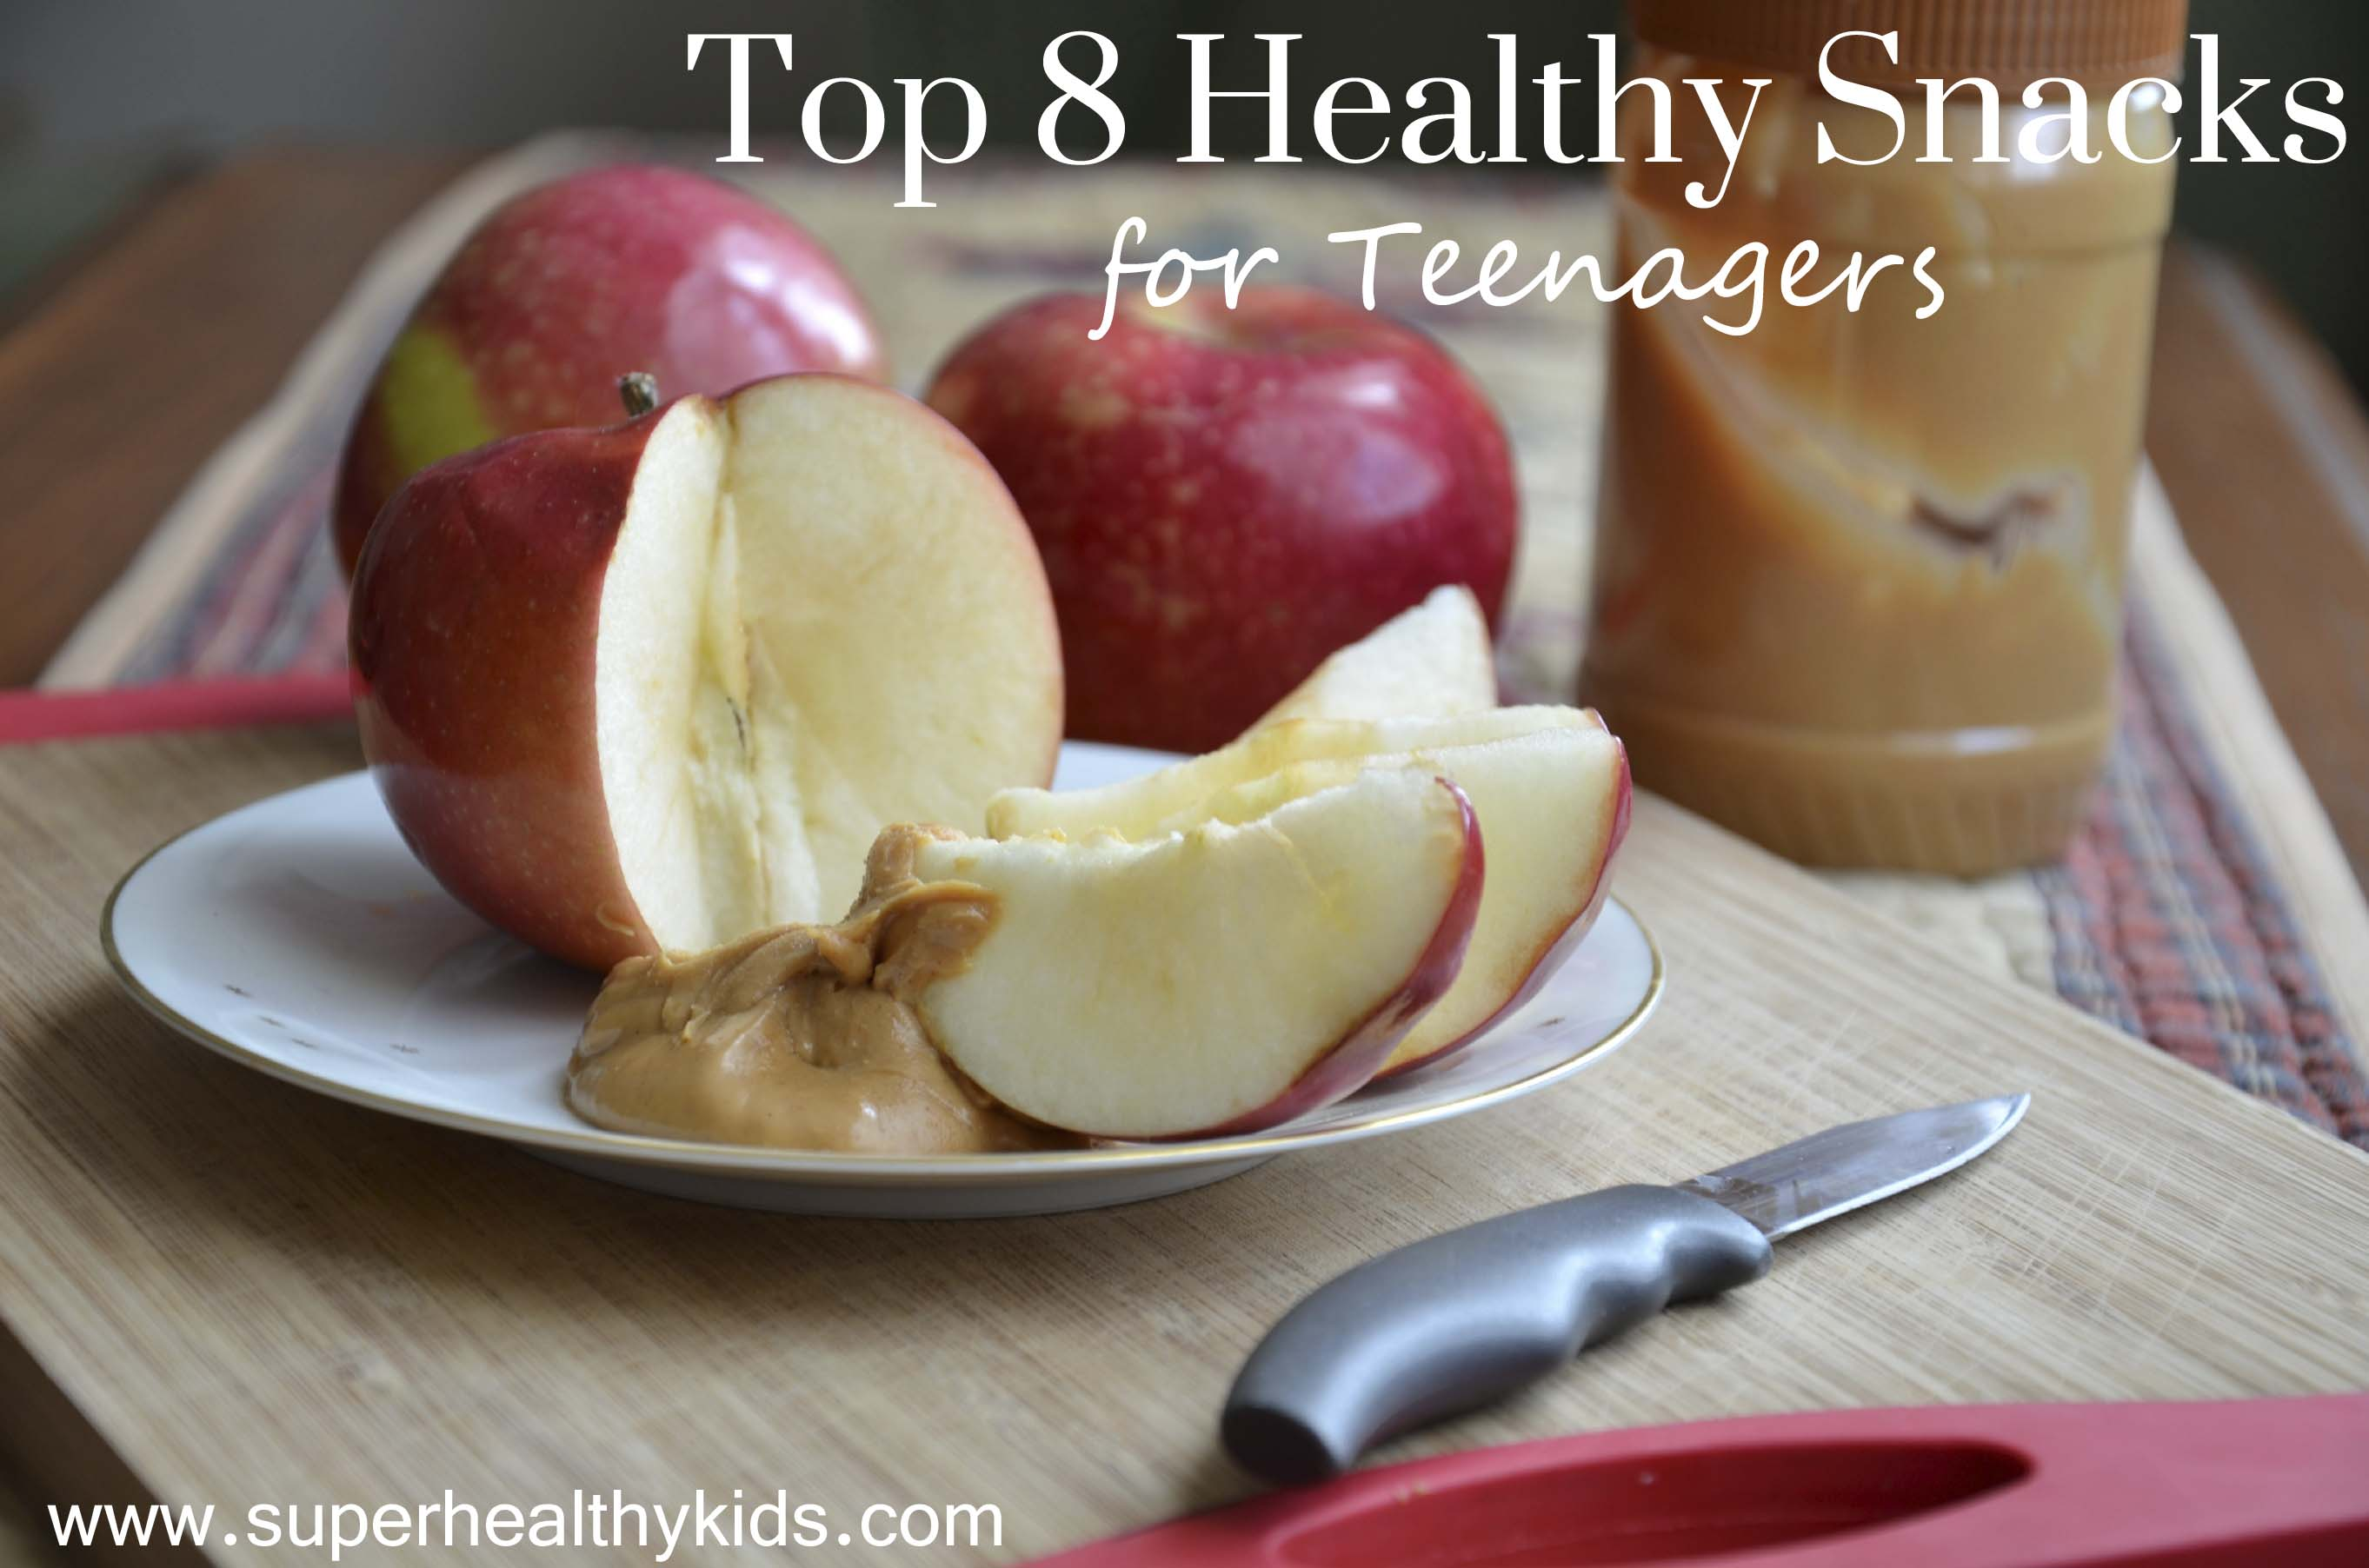 Top 8 healthy snacks for teenagers healthy ideas for kids top 8 healthy snacks for teenagers teenager always hungry mine too heres our forumfinder